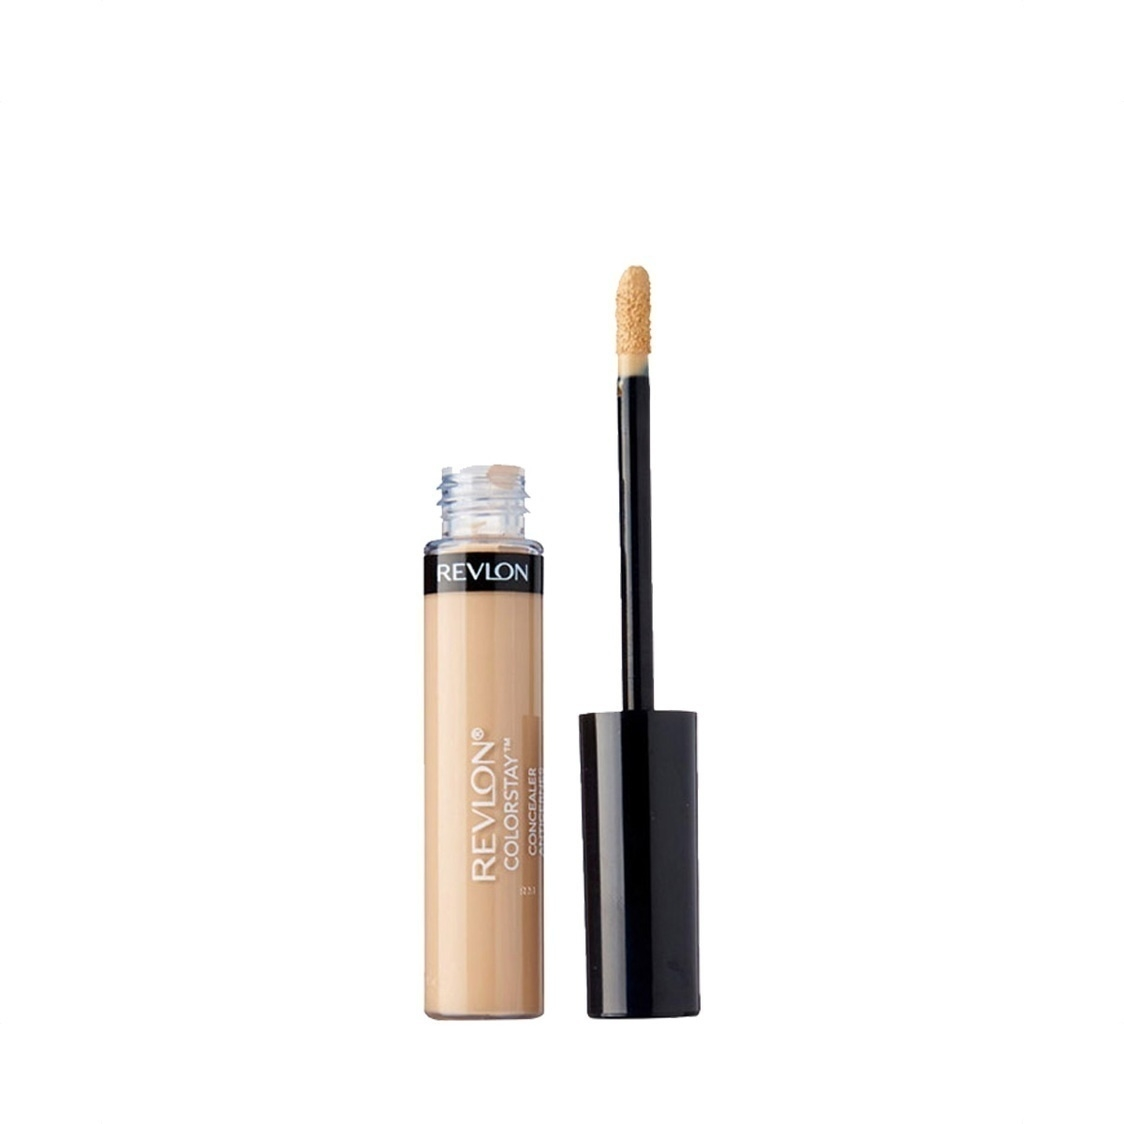 Colorstay Liquid Concealer